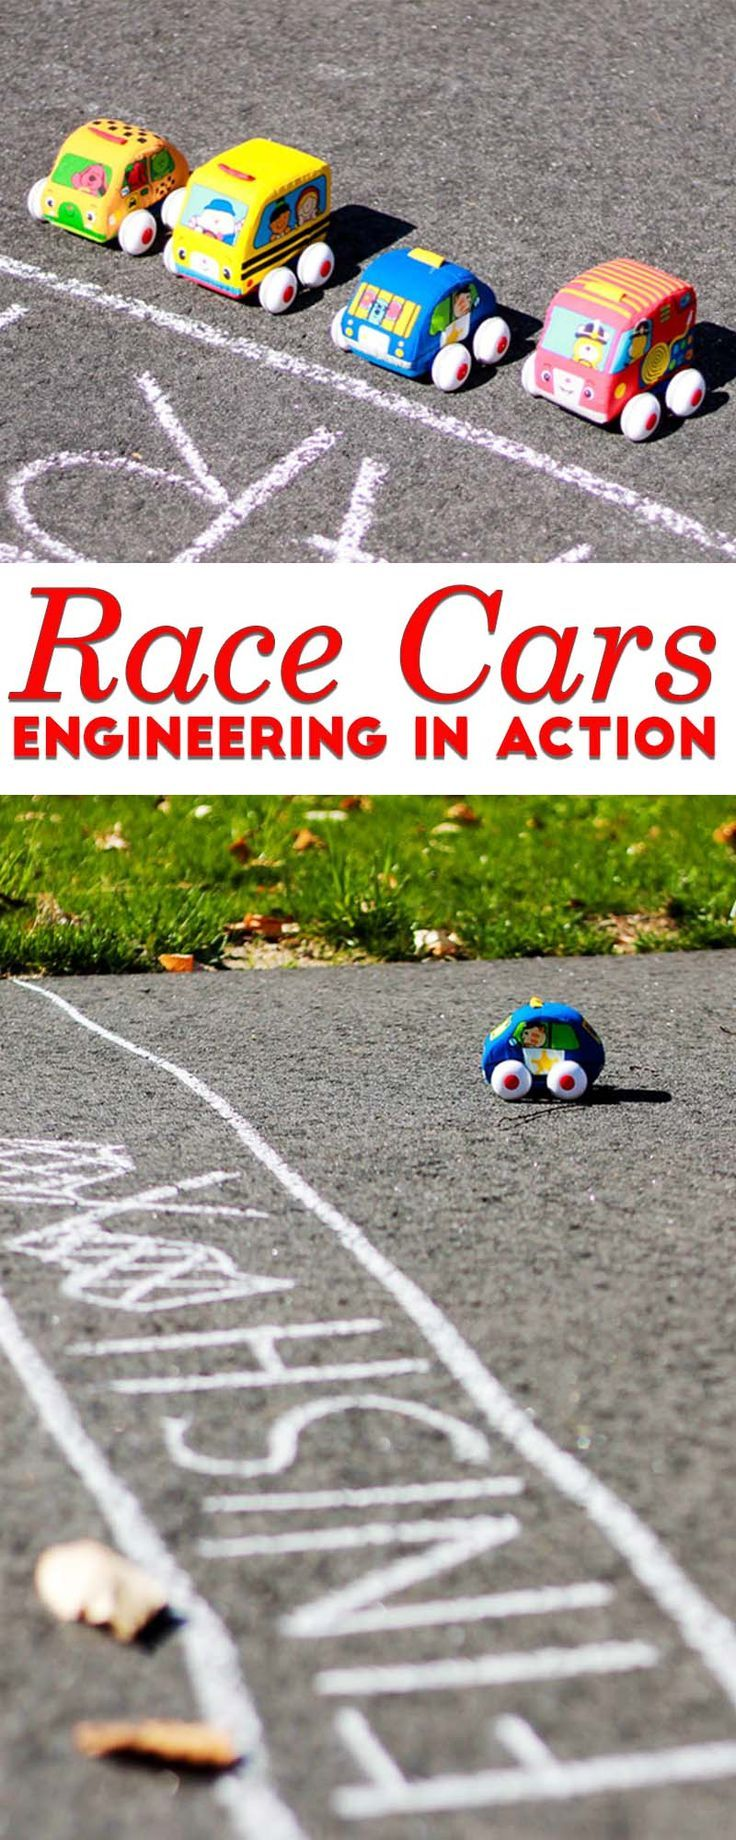 Engineering toys don't have to be expensive or complicated. Hands-on active learning with toys you already have... race cars!